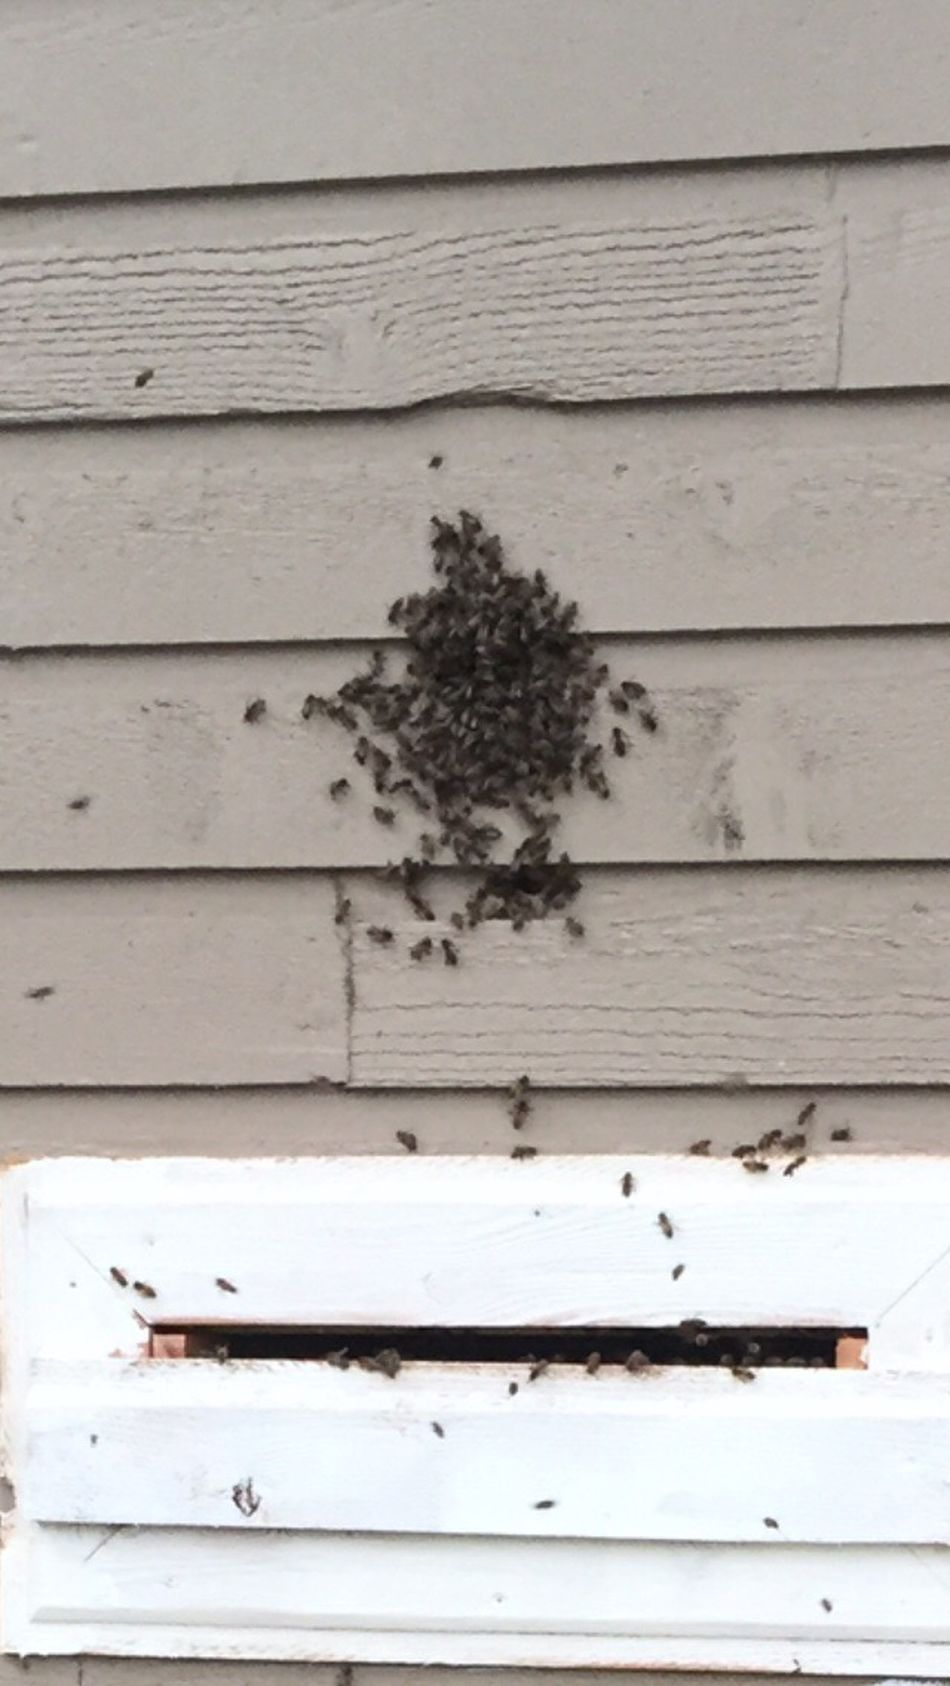 On a hot day some bees hang out near the entrance. Bees closely regulate the temperature of their hive. On a hot day some field bees will be asked to step outside to cool the hive a bit. Later in the day they go back inside Bees Save The Bees Heat Self Regulation